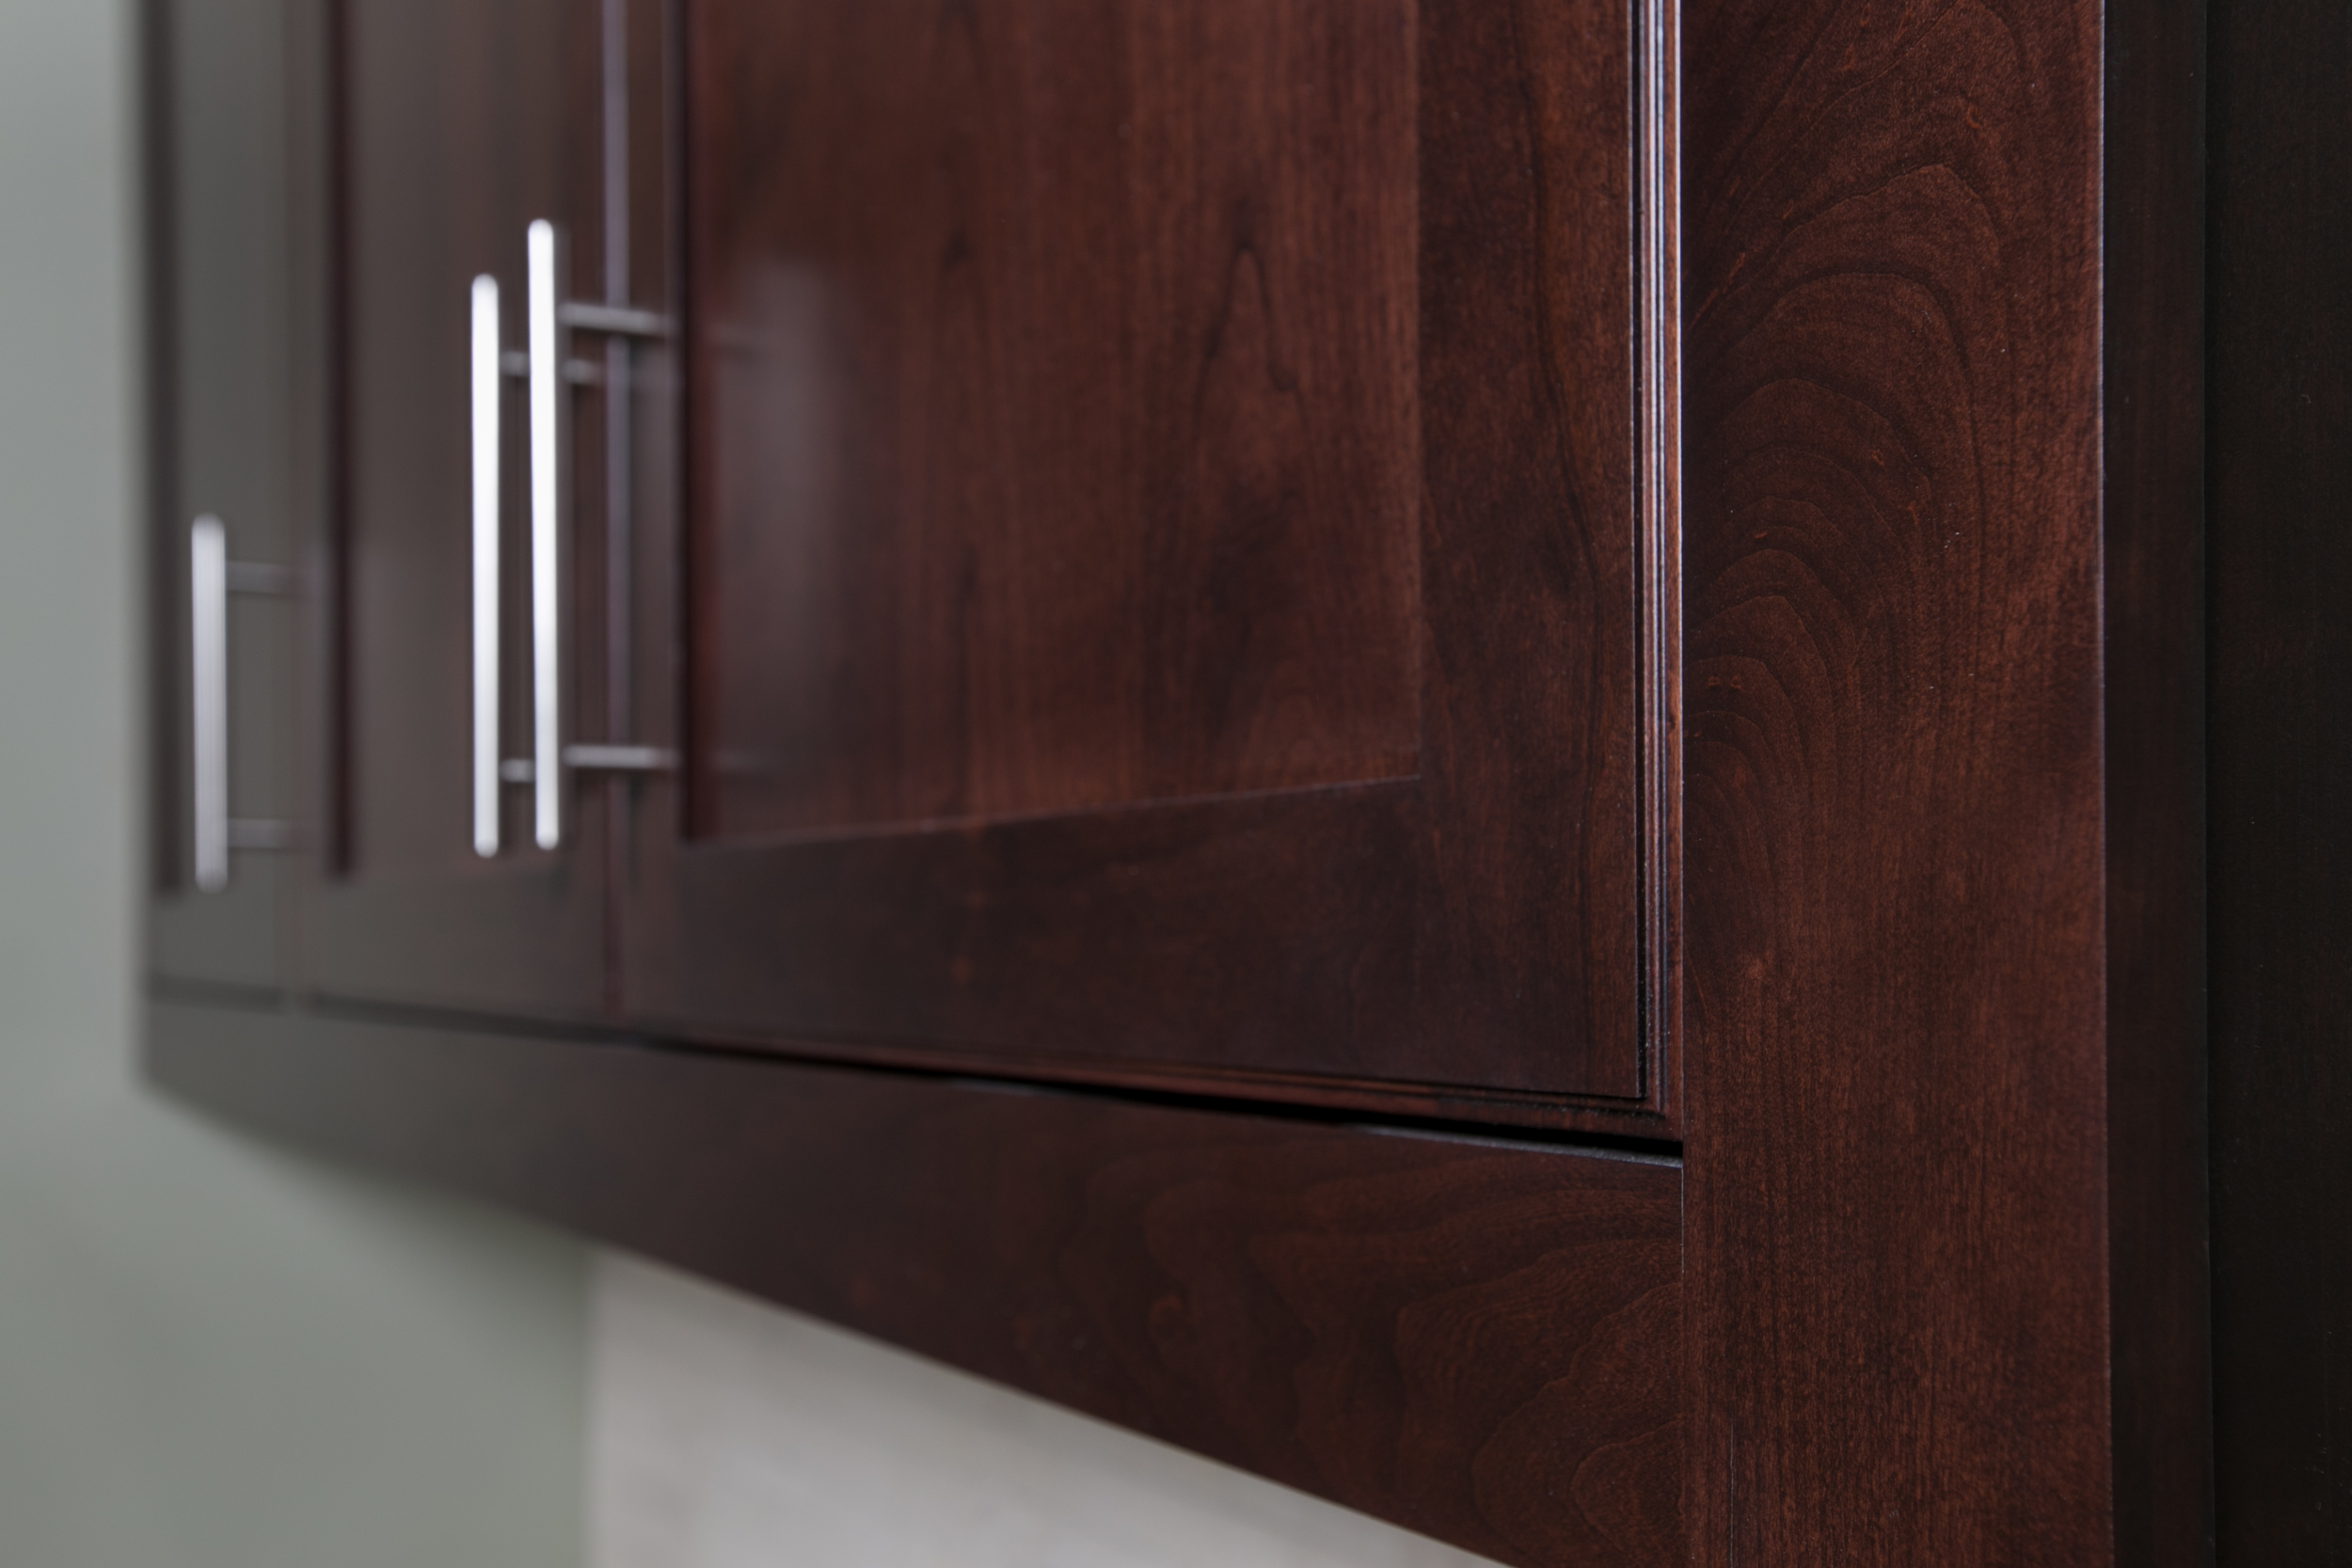 Inset Contemporary Cherry Cabinet Doors